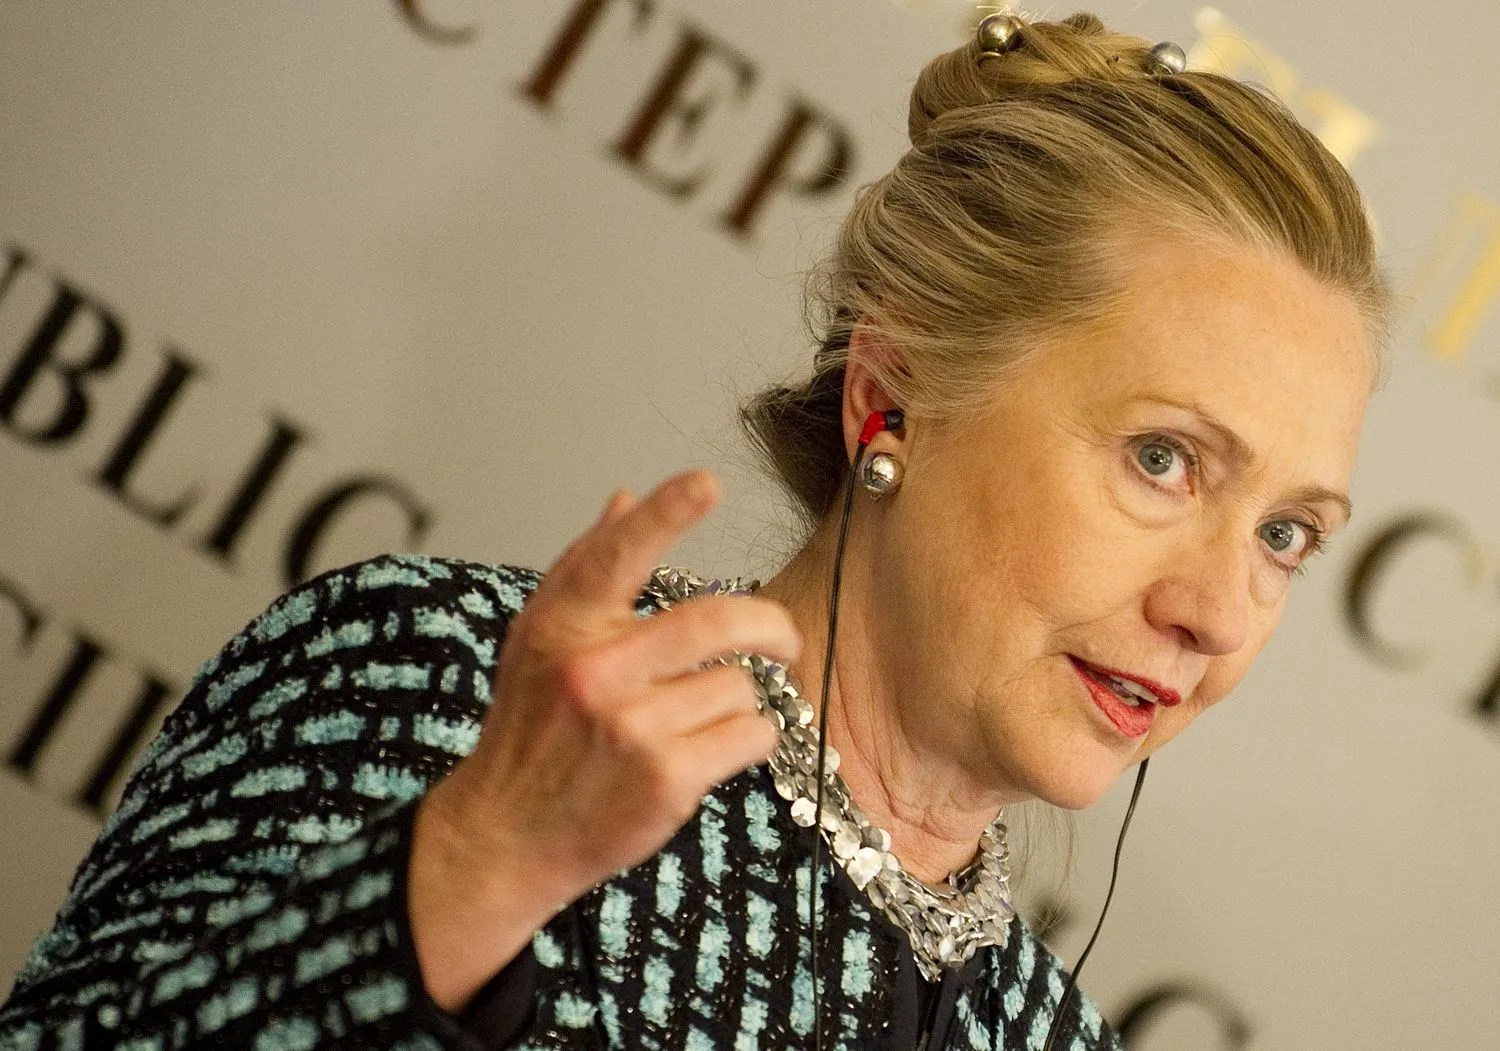 True Or False When Hillary Clintons Hair Is Pulled Back